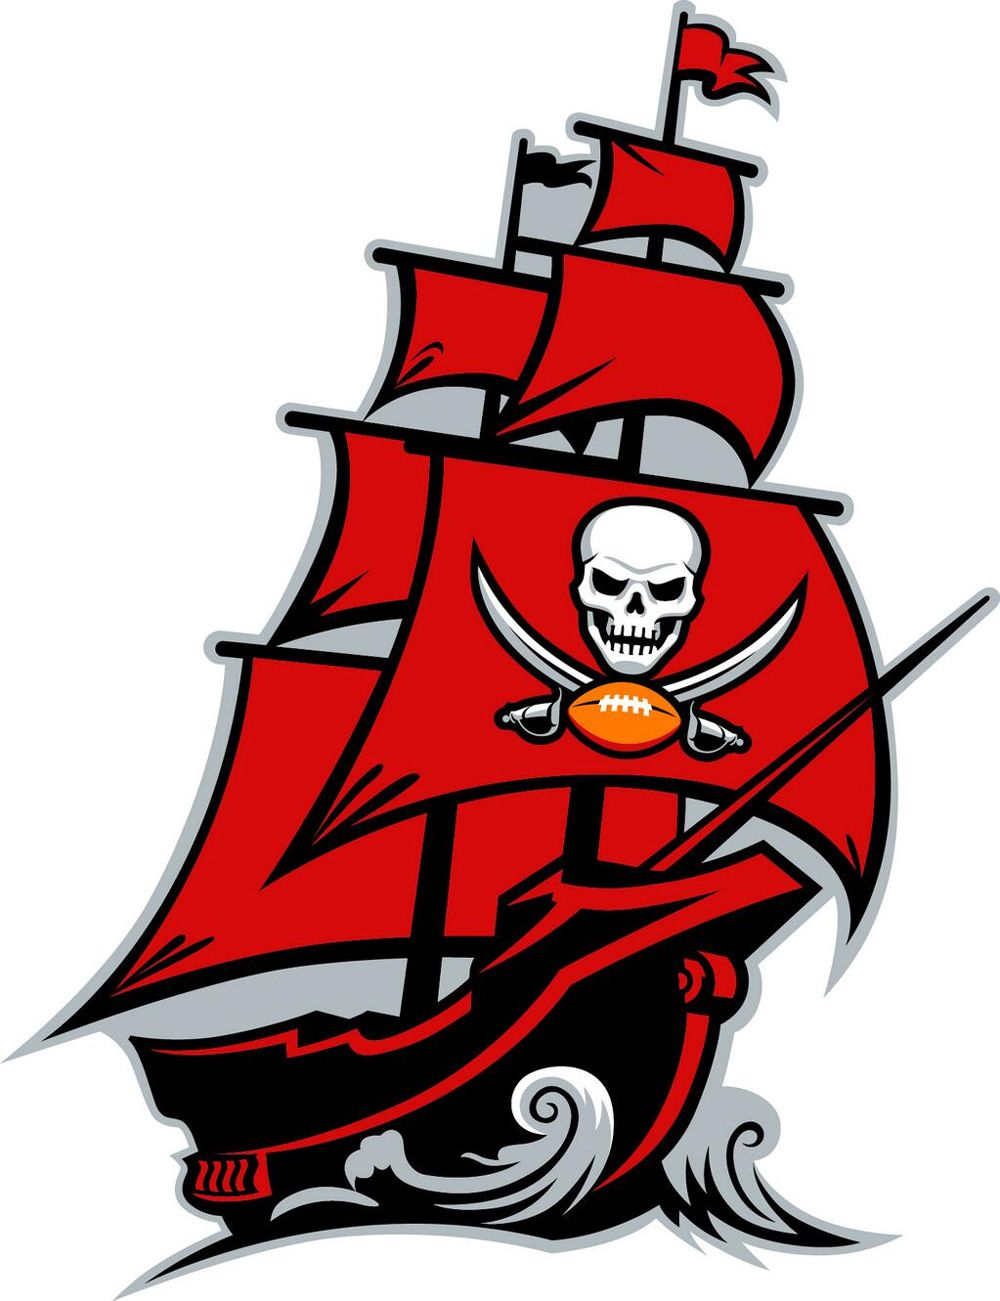 1000x1301 New Logo, Identity, And Helmet For Tampa Bay Buccaneers Design